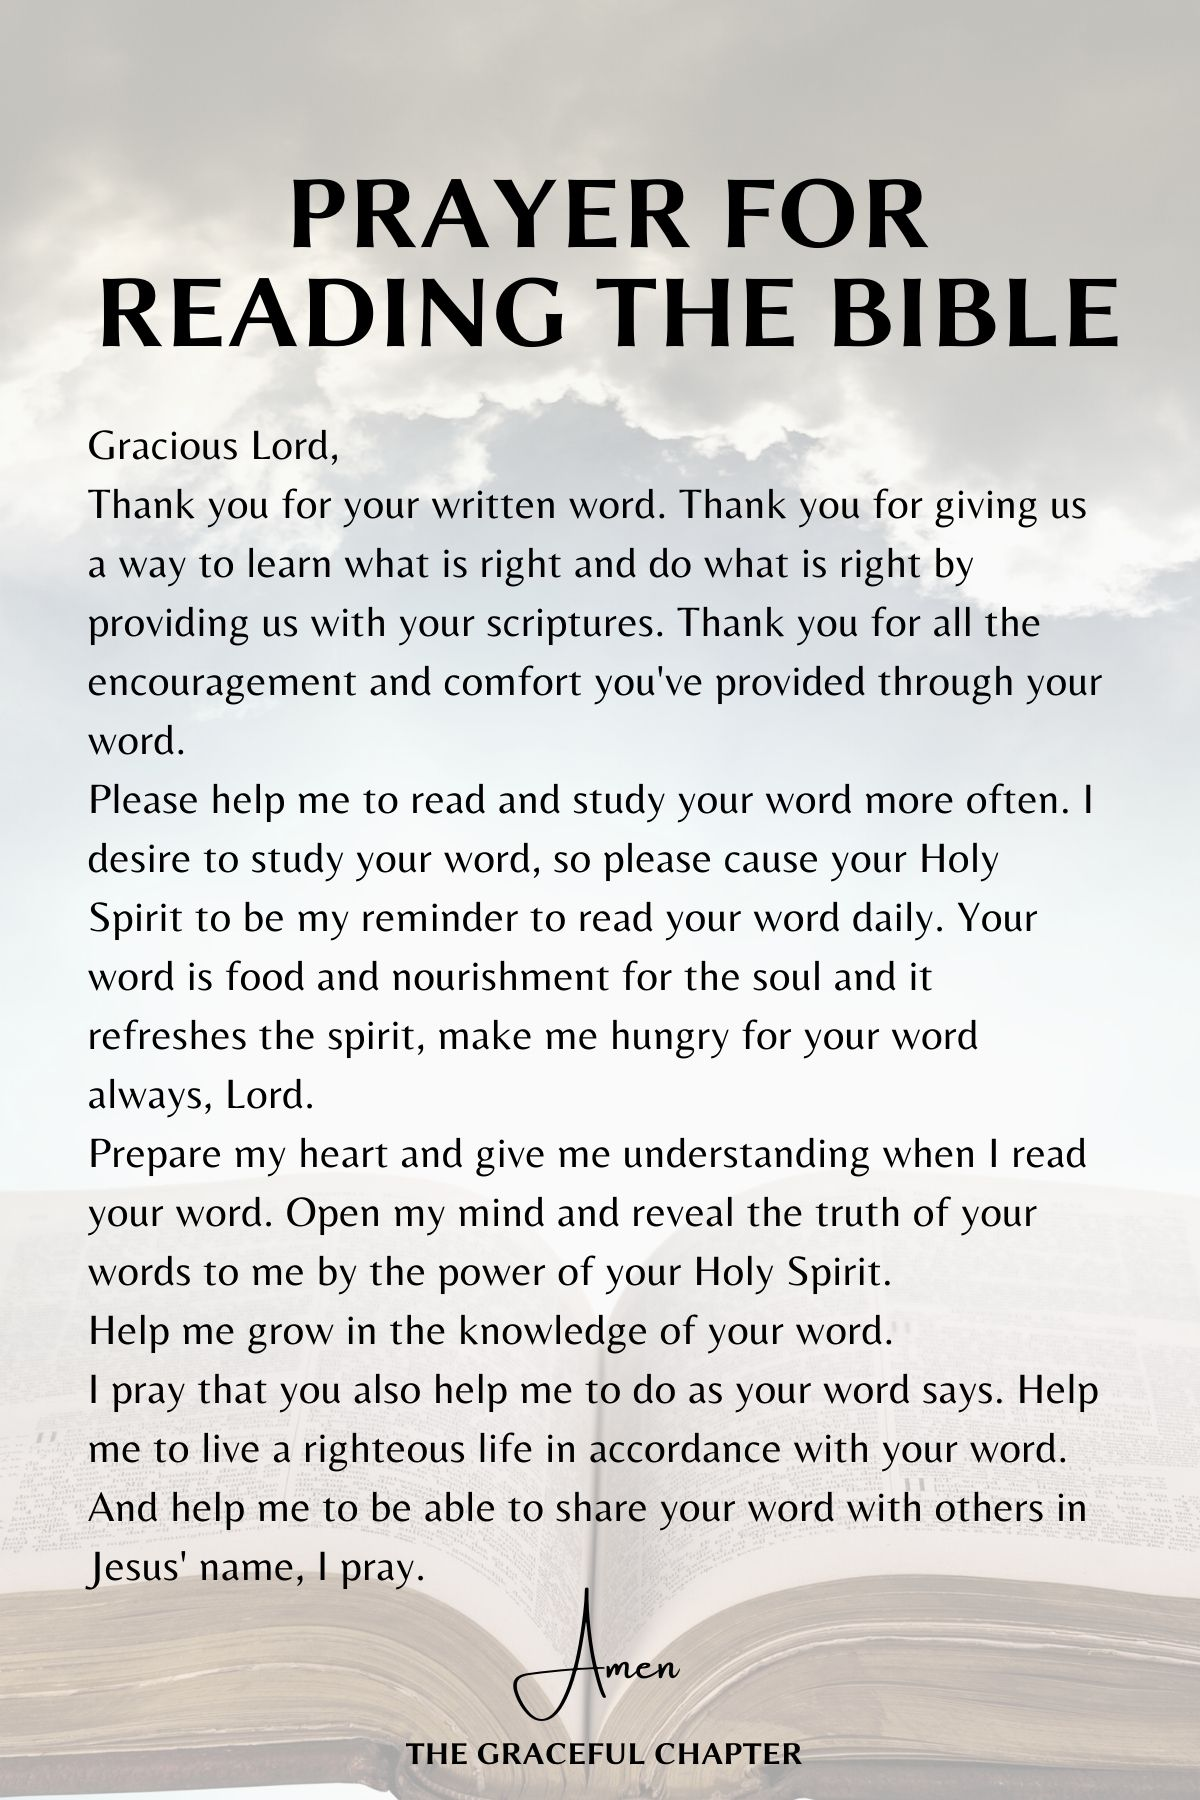 Prayer for reading the Bible